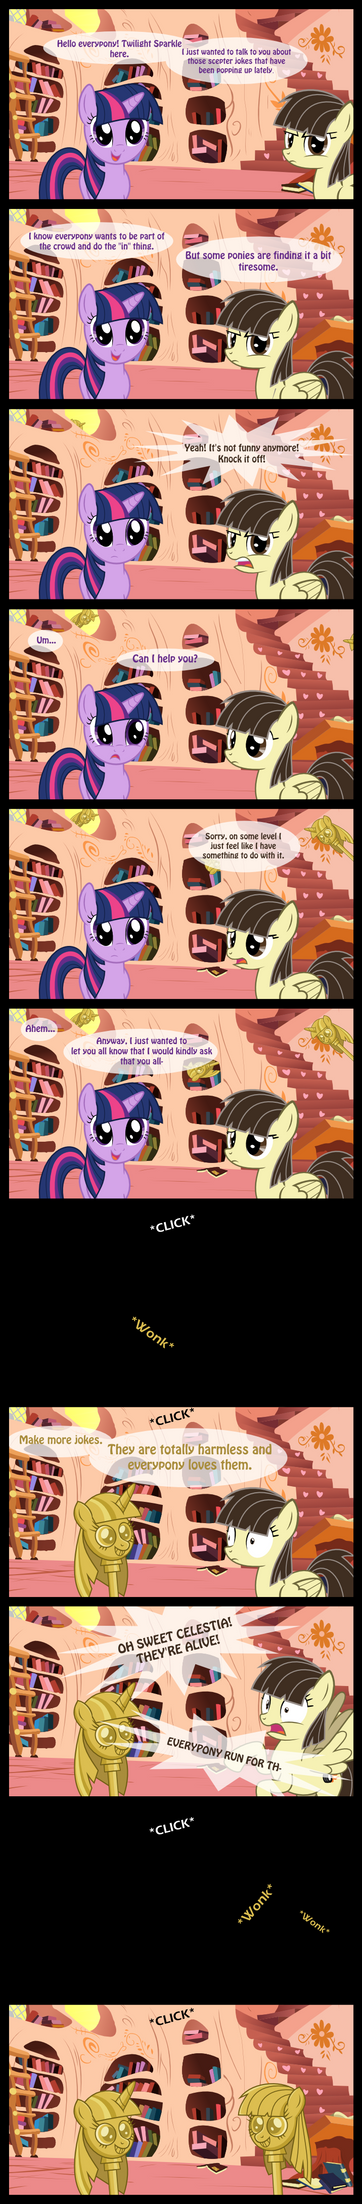 Sceptervention by Takua770